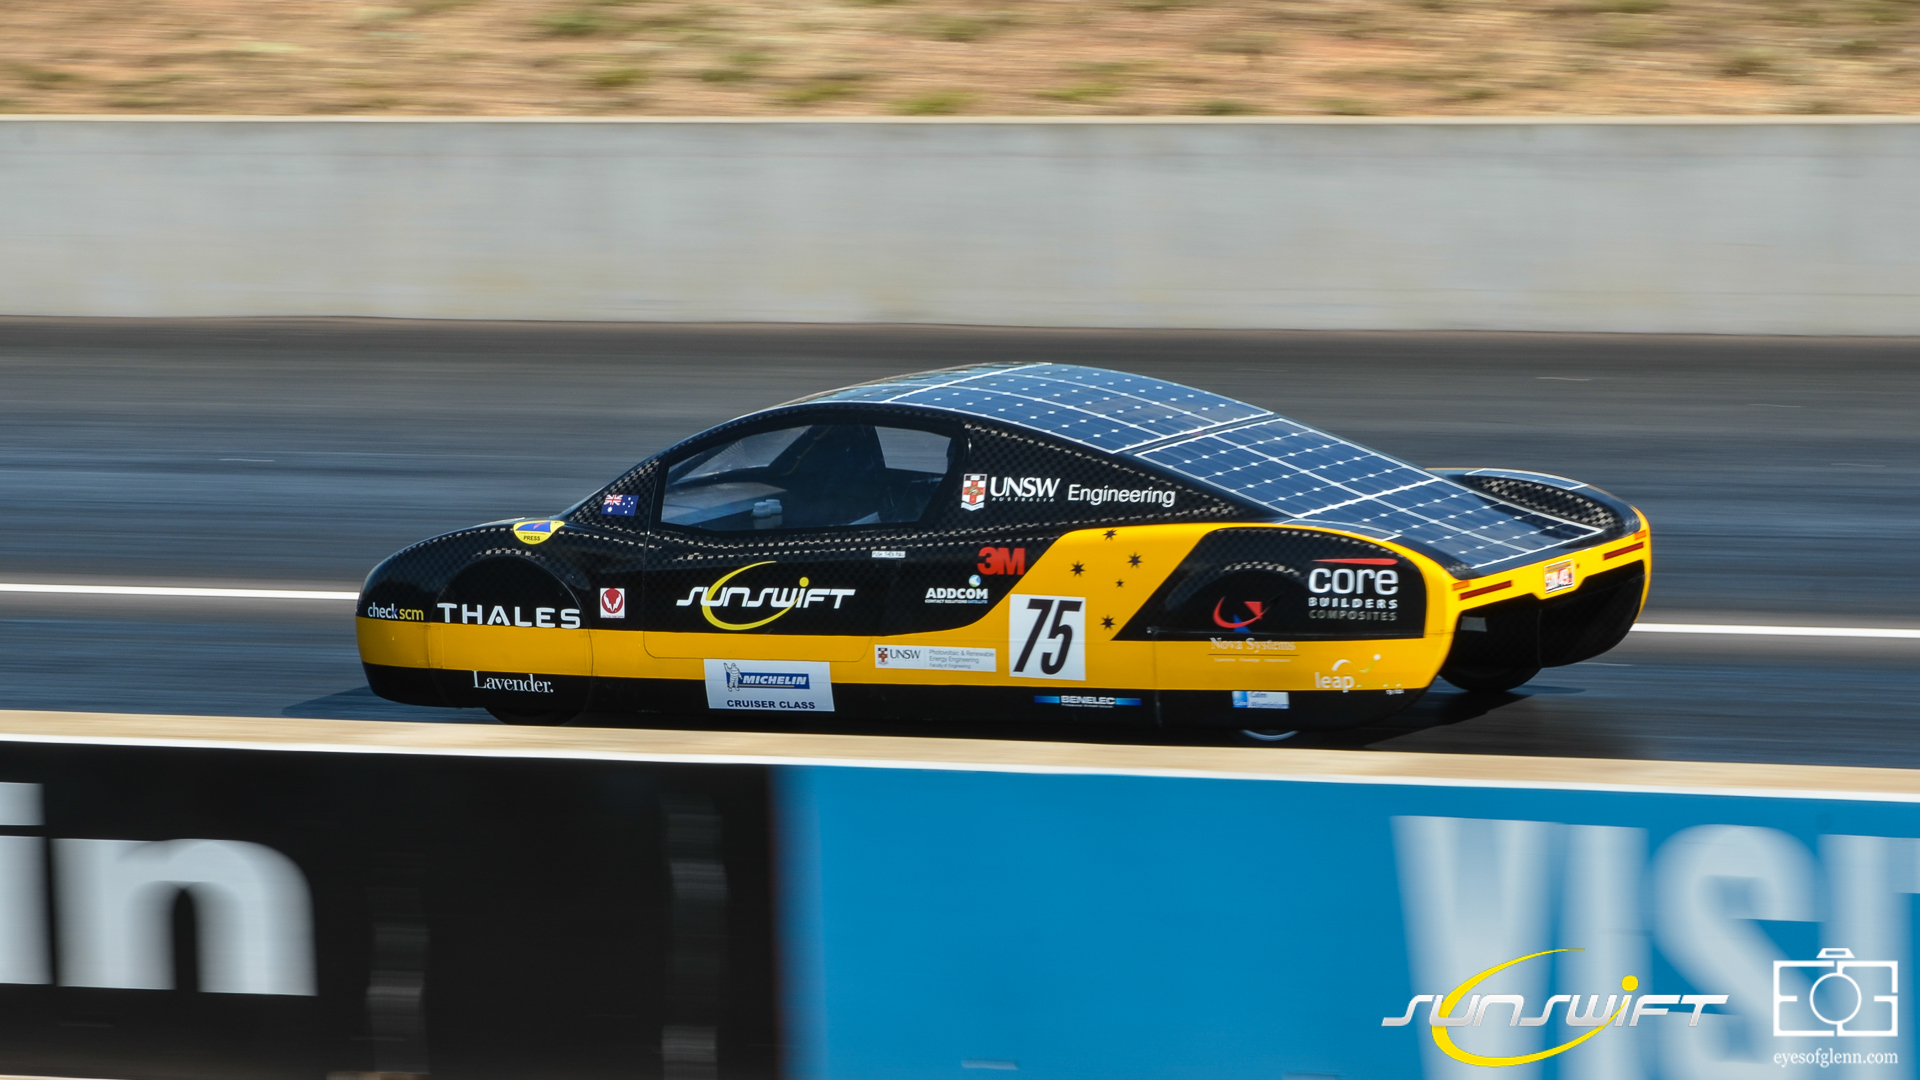 Sunswift eVe during dynamic scruitineering at Hidden Valley